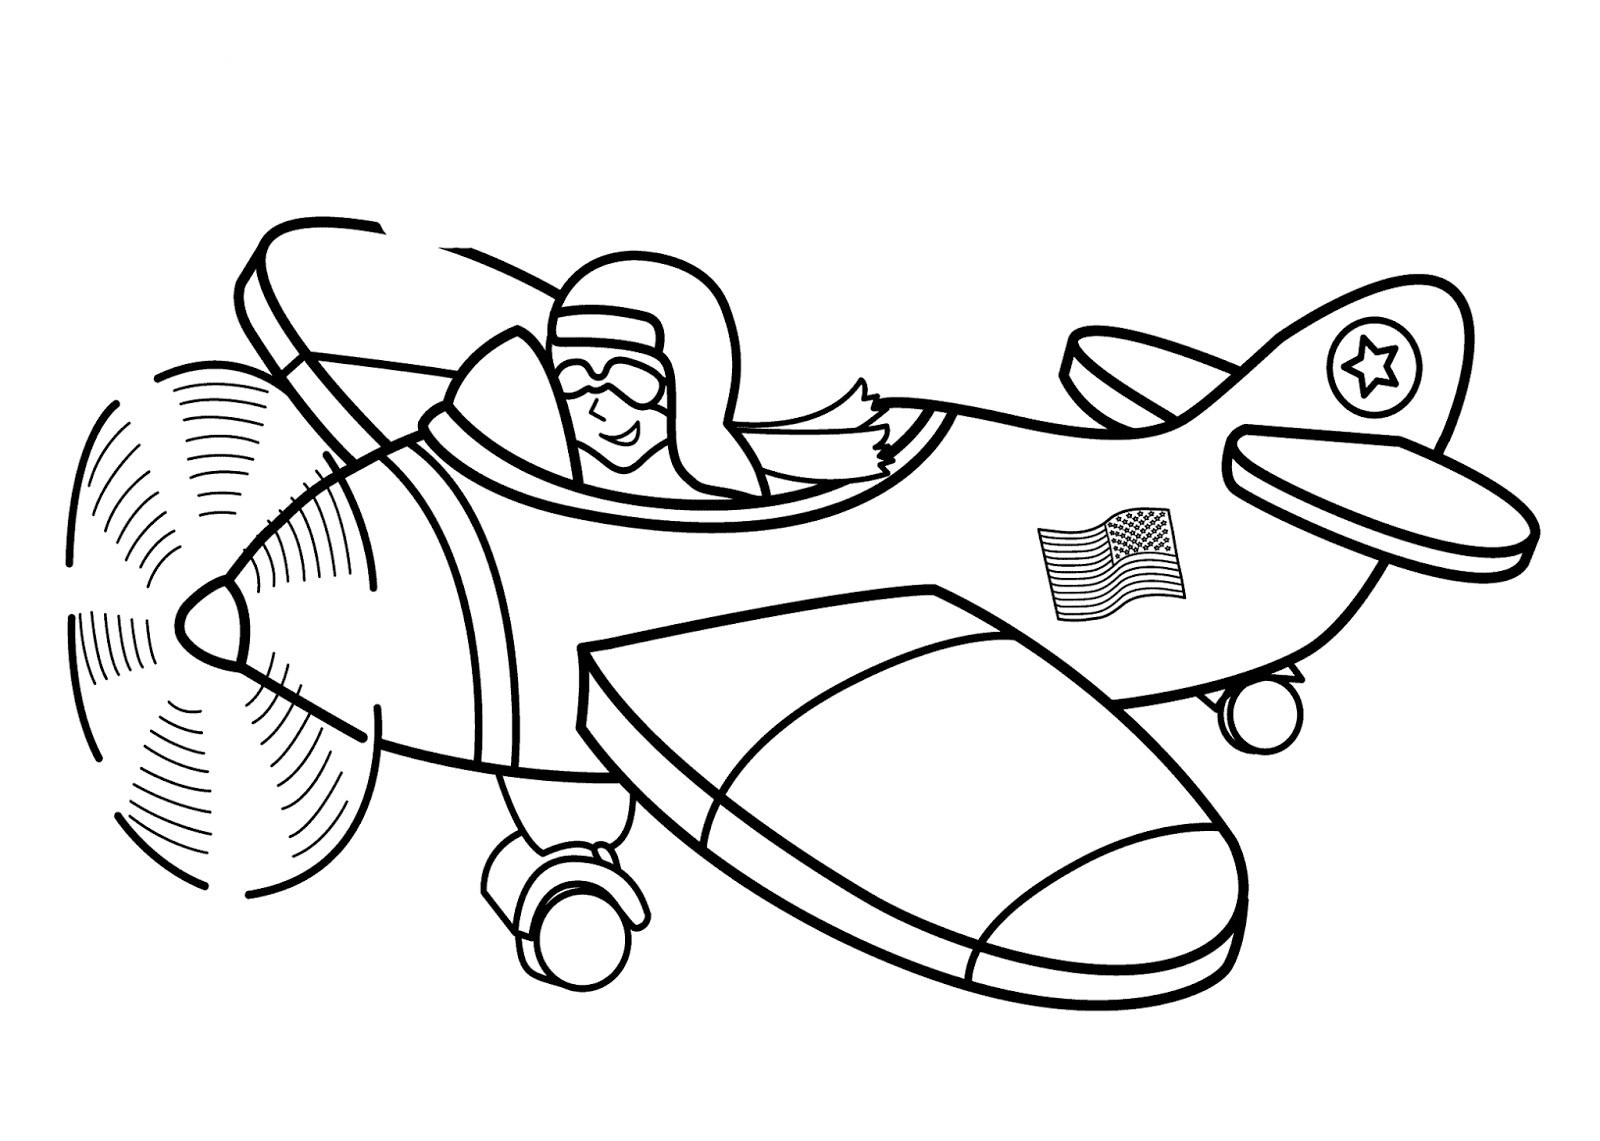 Pilot Coloring Pages For Kids  Transportation For Kids Coloring Pages